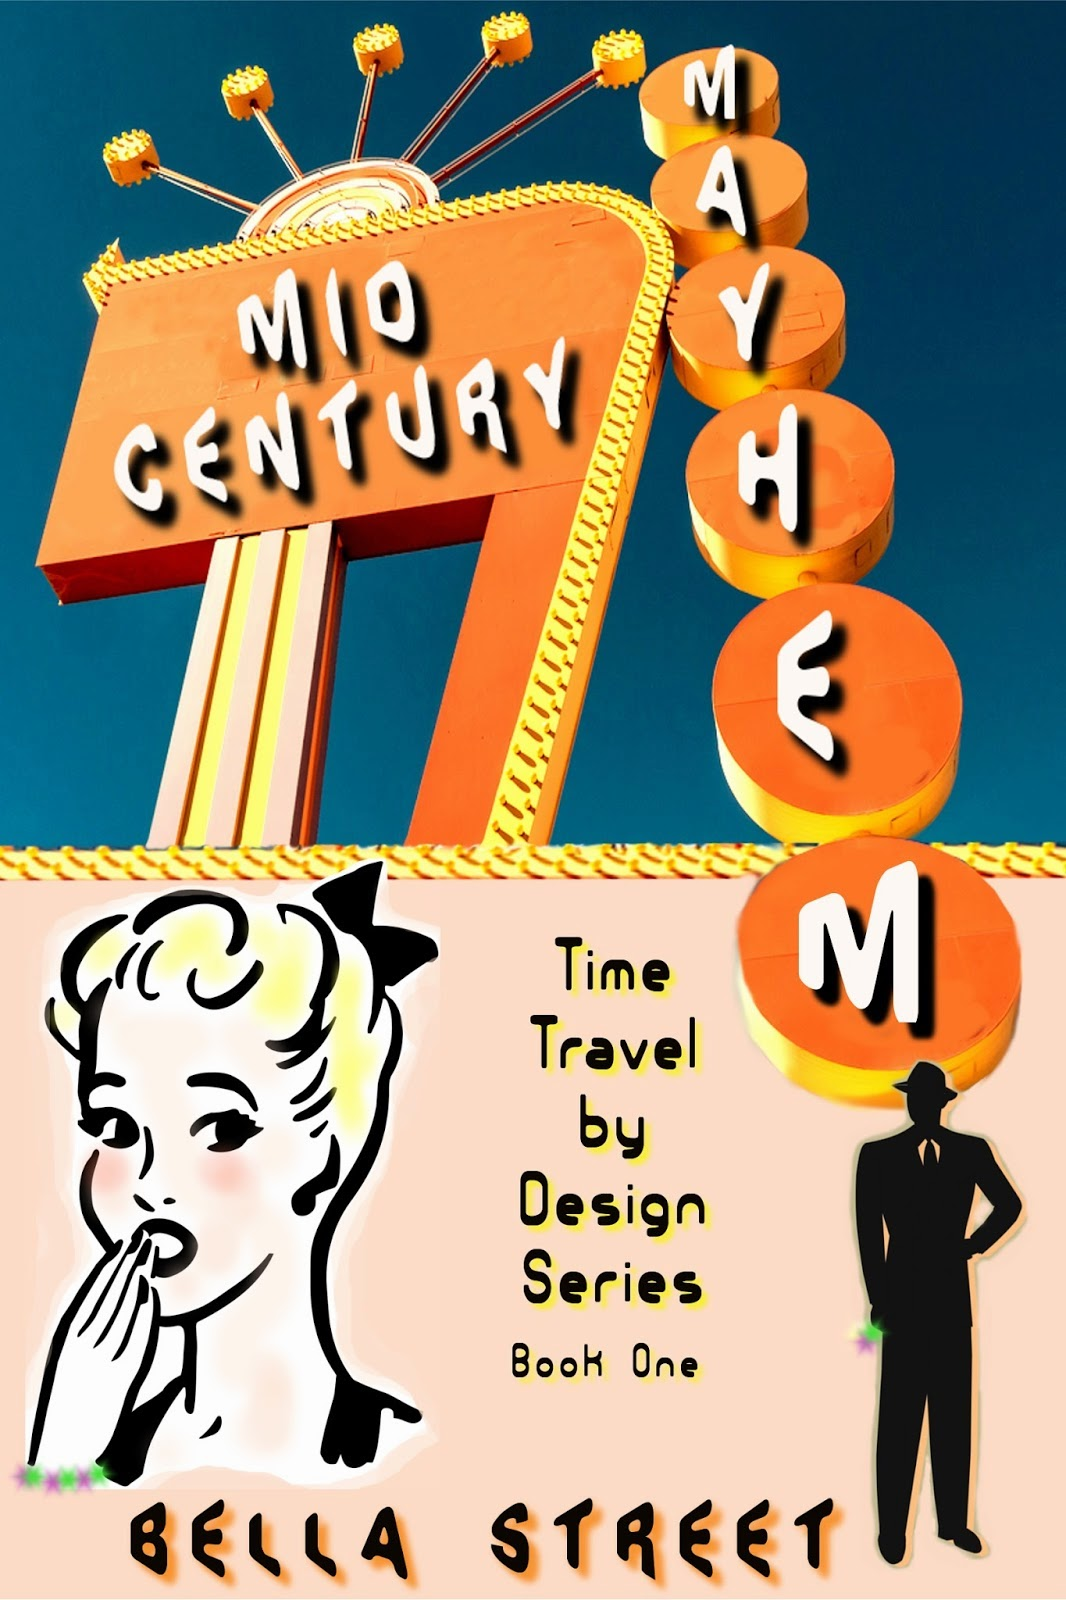 http://www.amazon.com/Mid-Century-Mayhem-Time-Travel-Romance-Presents-ebook/dp/B00QNCBPOY/ref=asap_B004XJ6S2I_1_13?s=books&ie=UTF8&qid=1417903262&sr=1-13